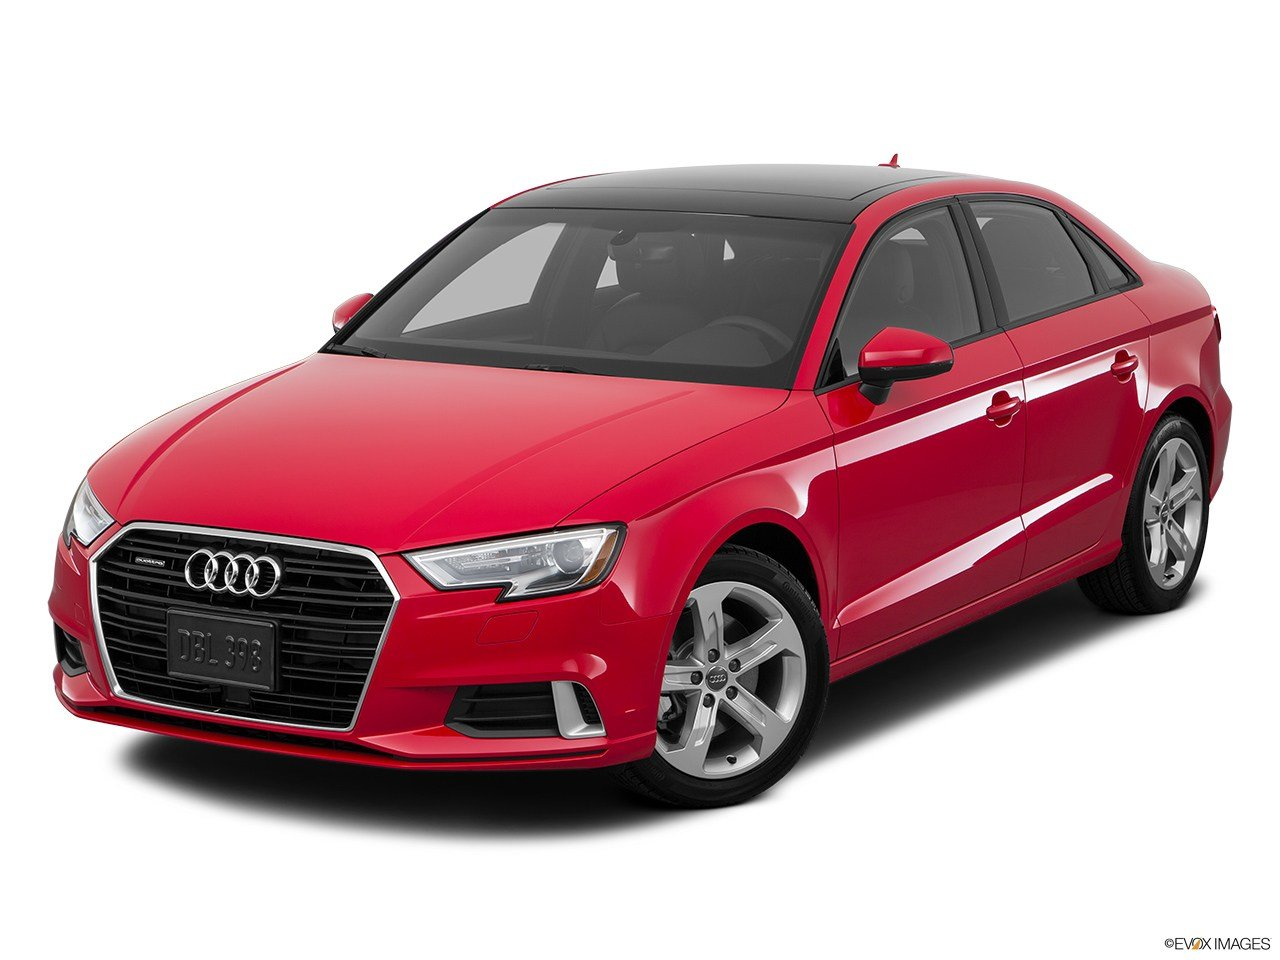 Latest 2018 Audi A3 Sedan Prices In Uae Gulf Specs Reviews For Free Download